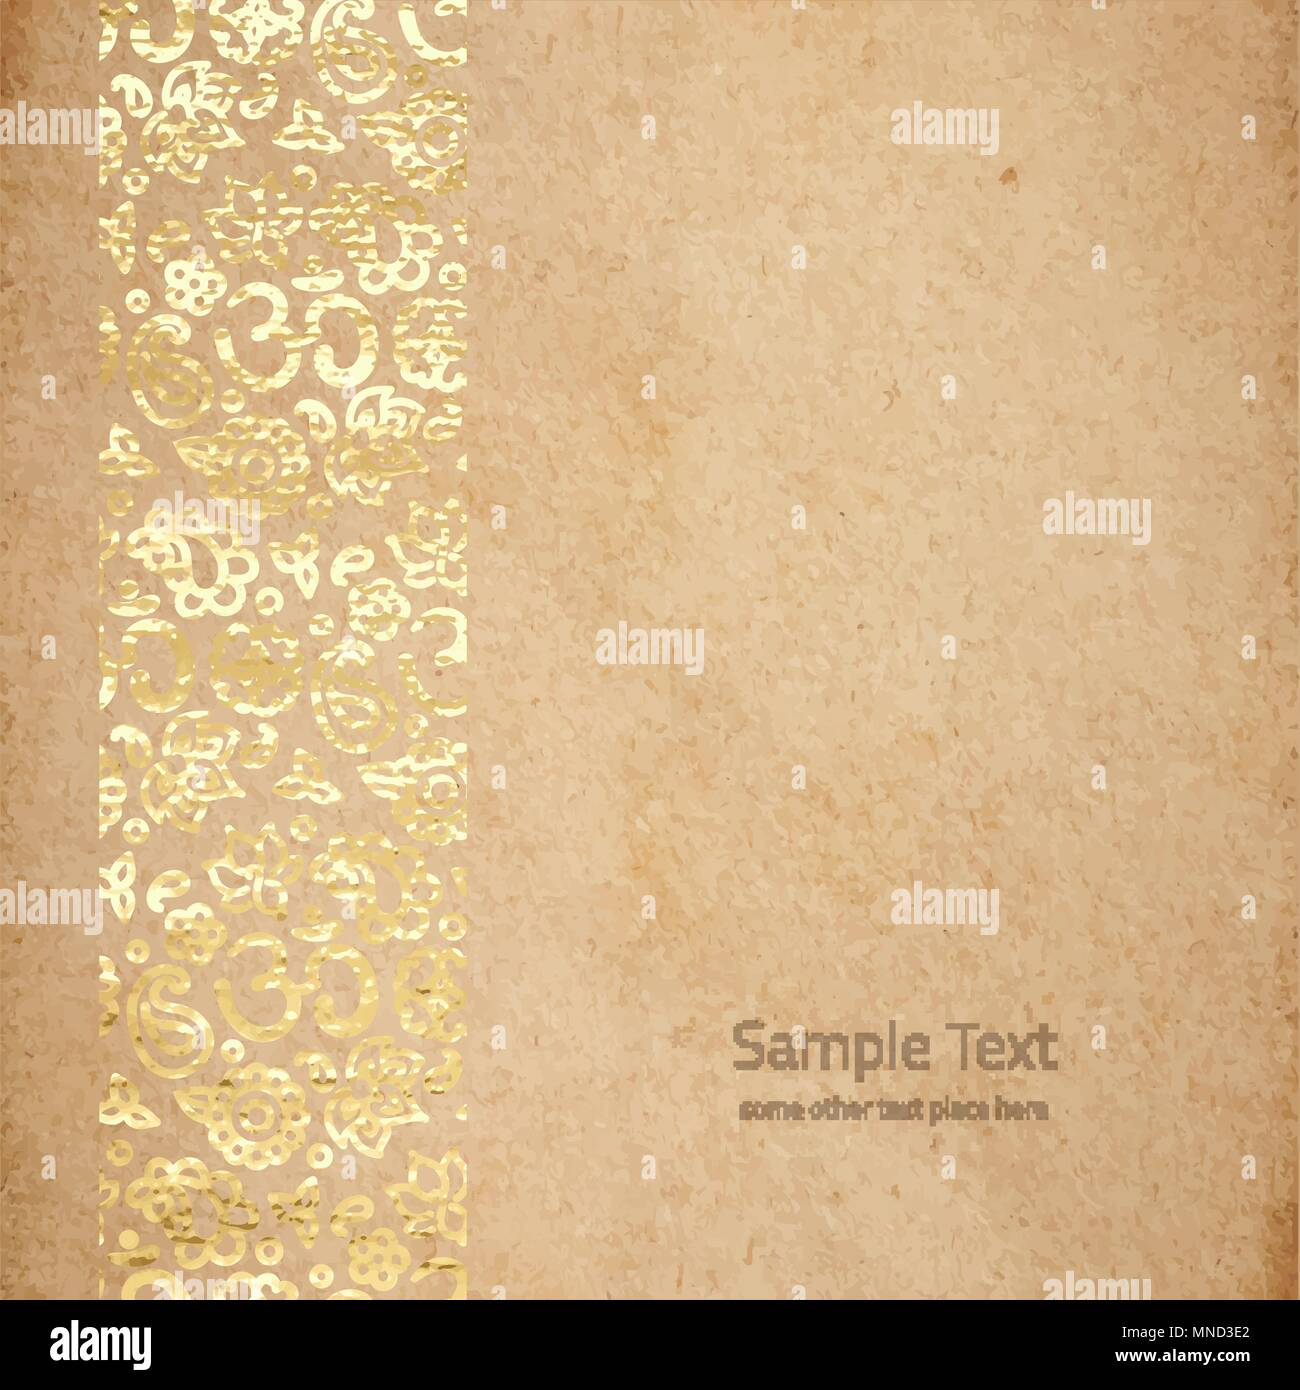 Vintage Old Paper Texture With Golden Ink OM Meditation Border Zen Background Scrapbooking Victorian Style Page Hand Drawn Vector Illustrat